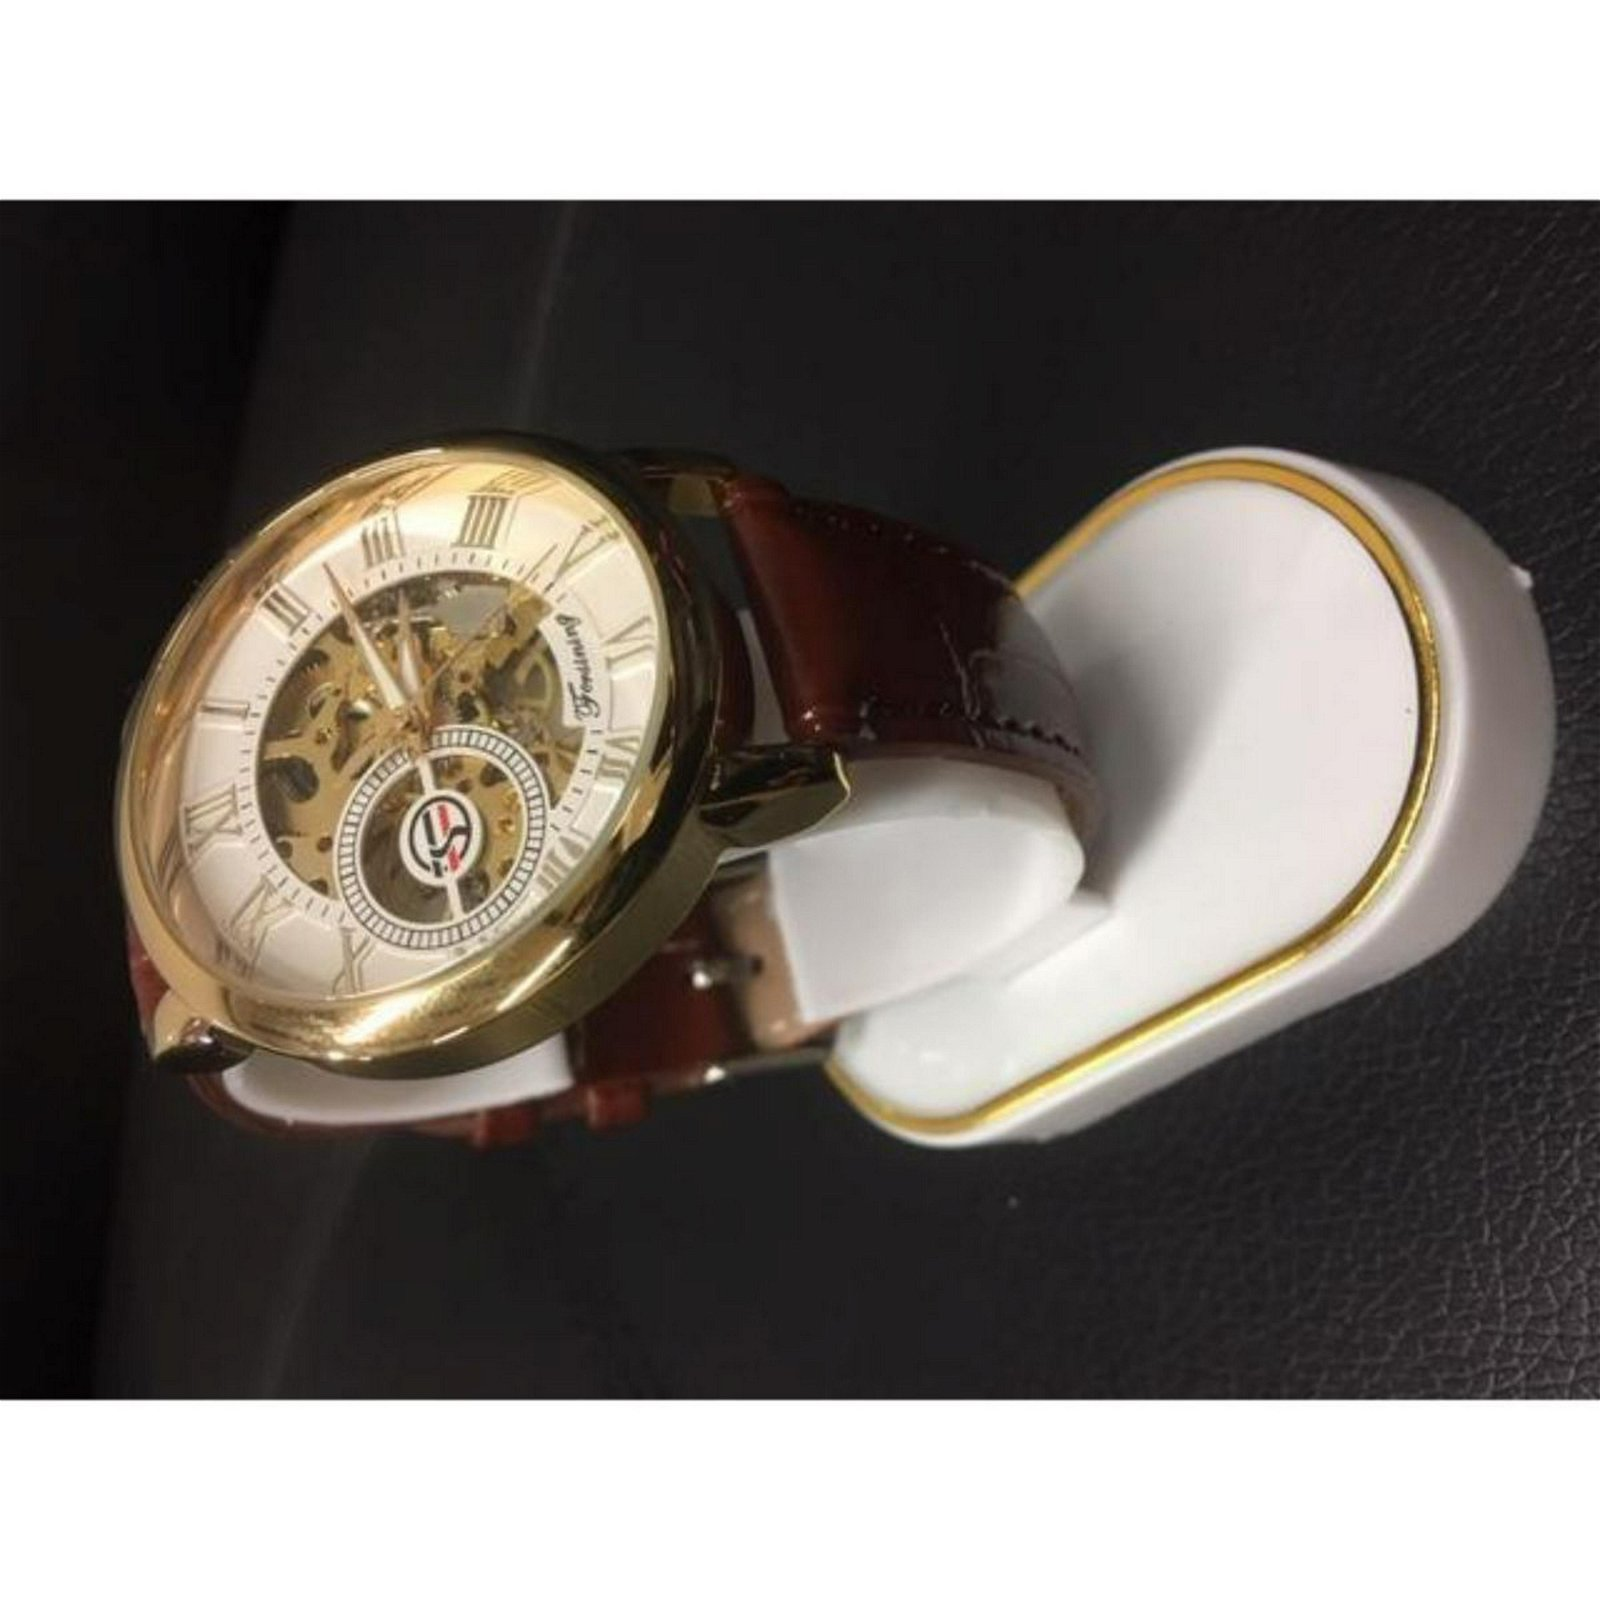 Forsining Wrist Watch Skeleton Dial with Mechanical